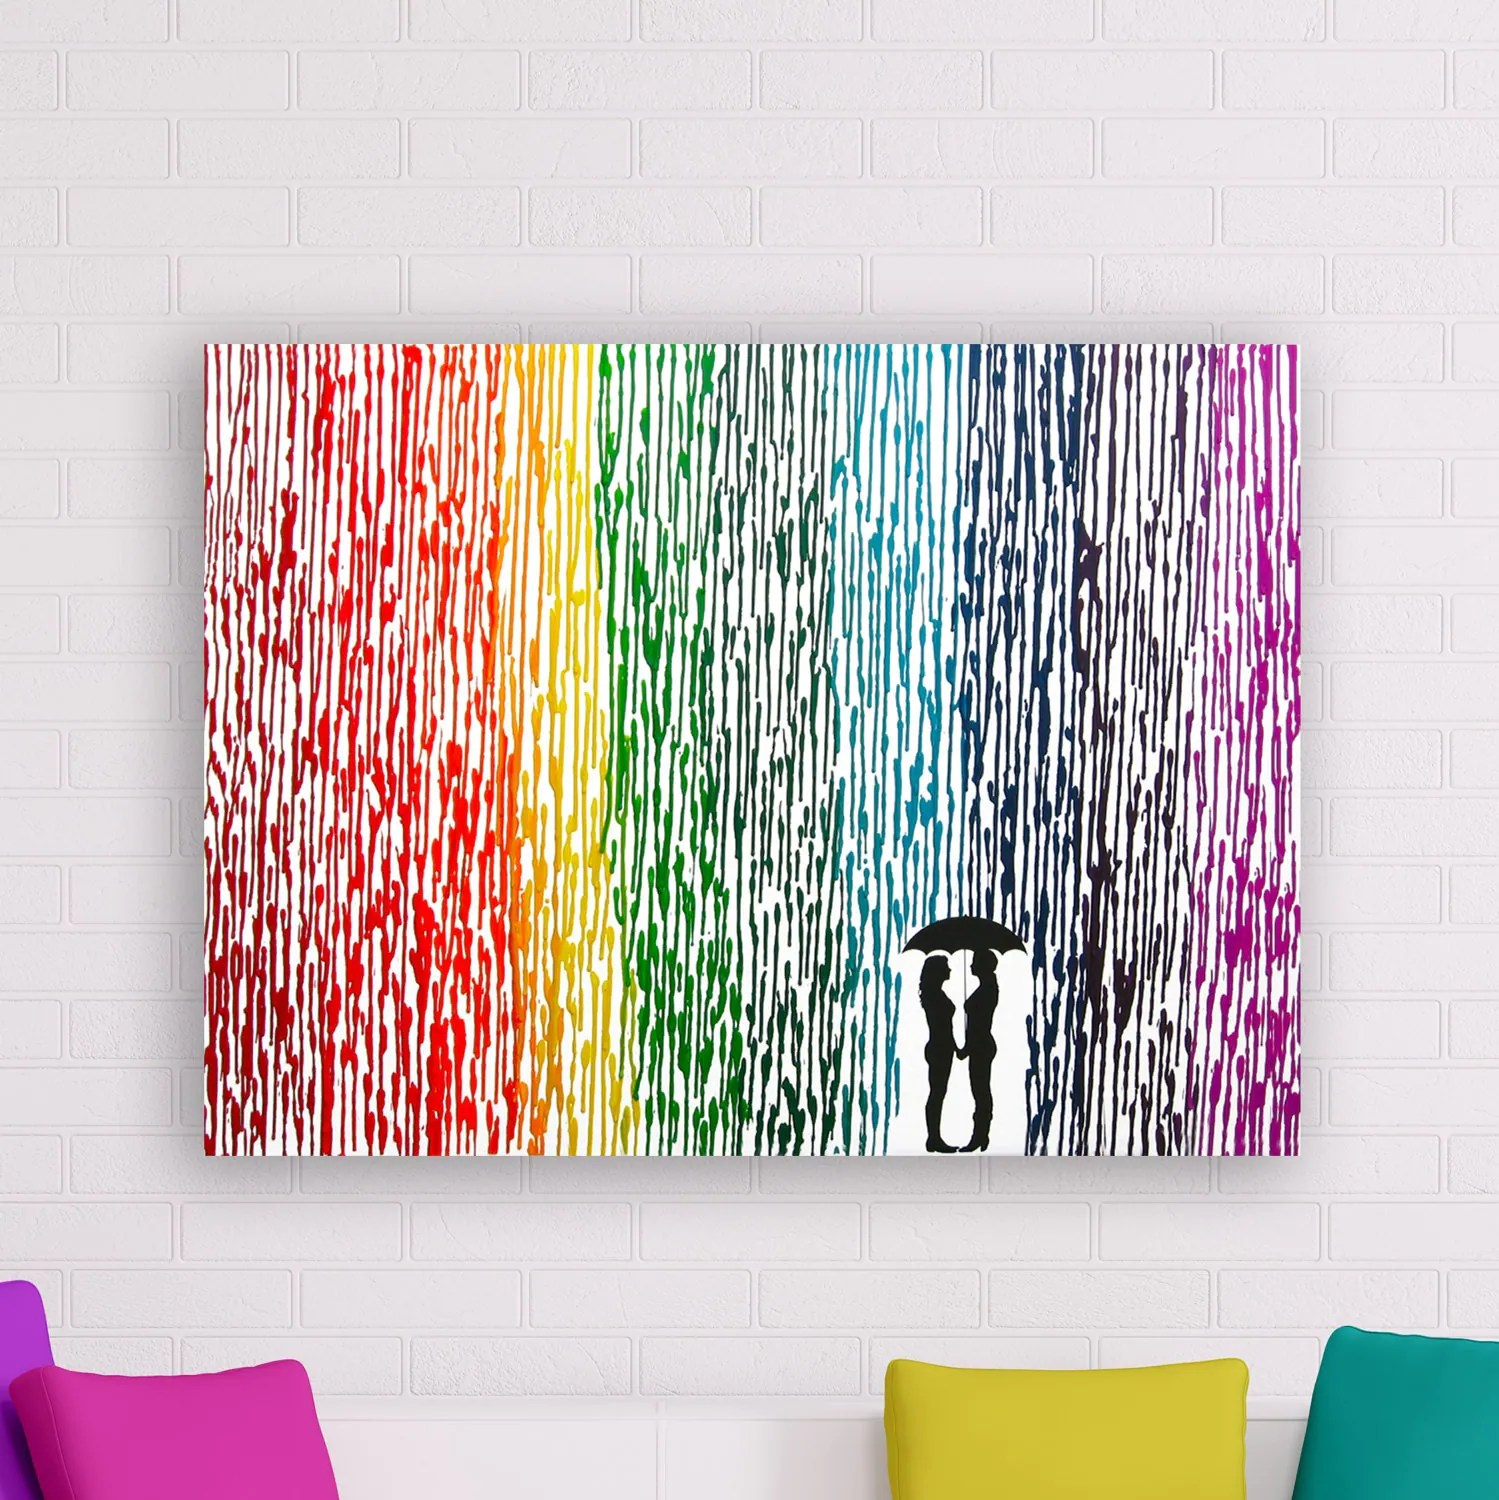 lesbian wedding lesbian wedding ideas Lesbian Wedding Gift Melted Crayon Art Rainbow Painting Lesbian Pride Umbrella Painting Rainbow Decor Couple Silhouette Lesbians